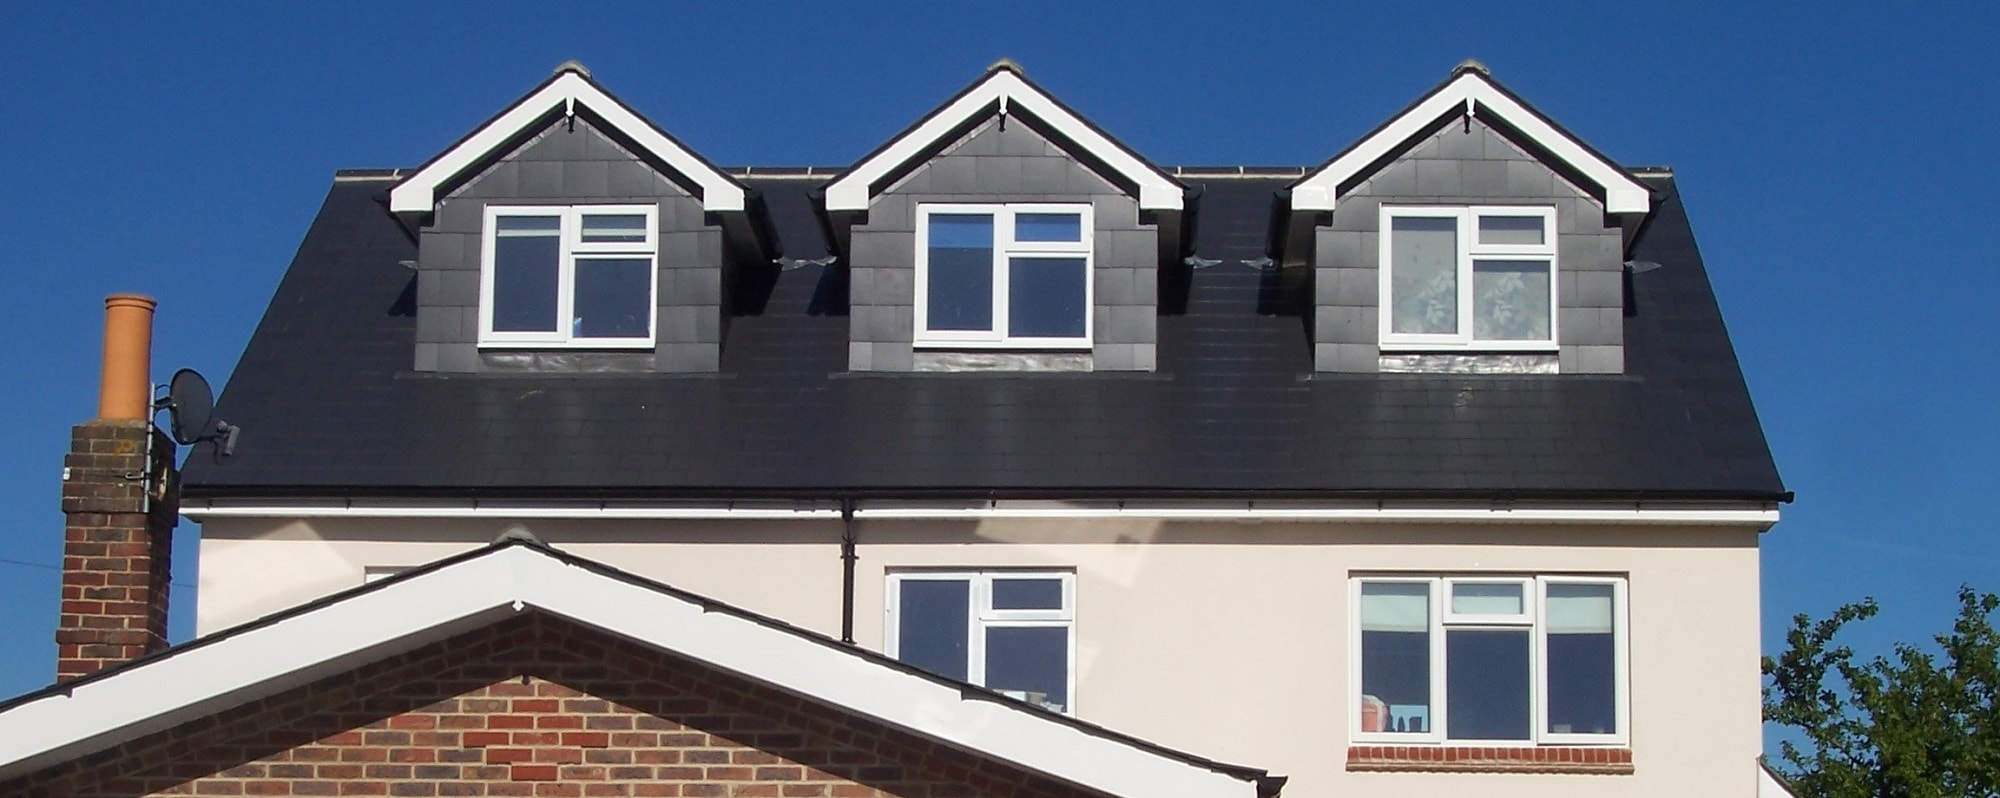 Detached house in Portsmouth loft conversion and side extension with slate dormers to front and rear elevations